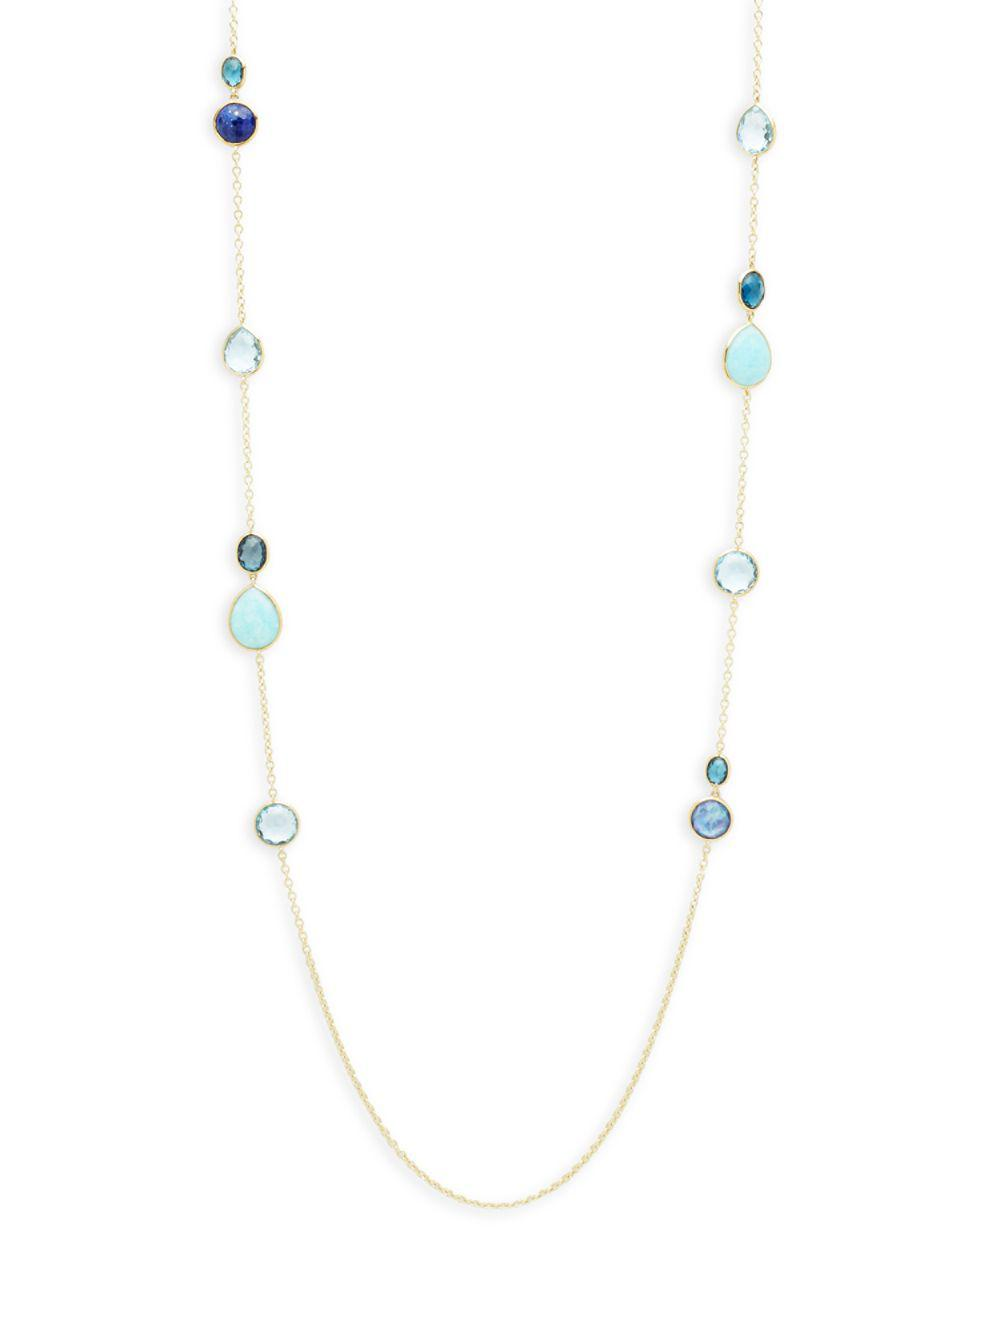 Ippolita 18K Rock Candy Mixed Stone Long Necklace in Summer Rainbow, 40